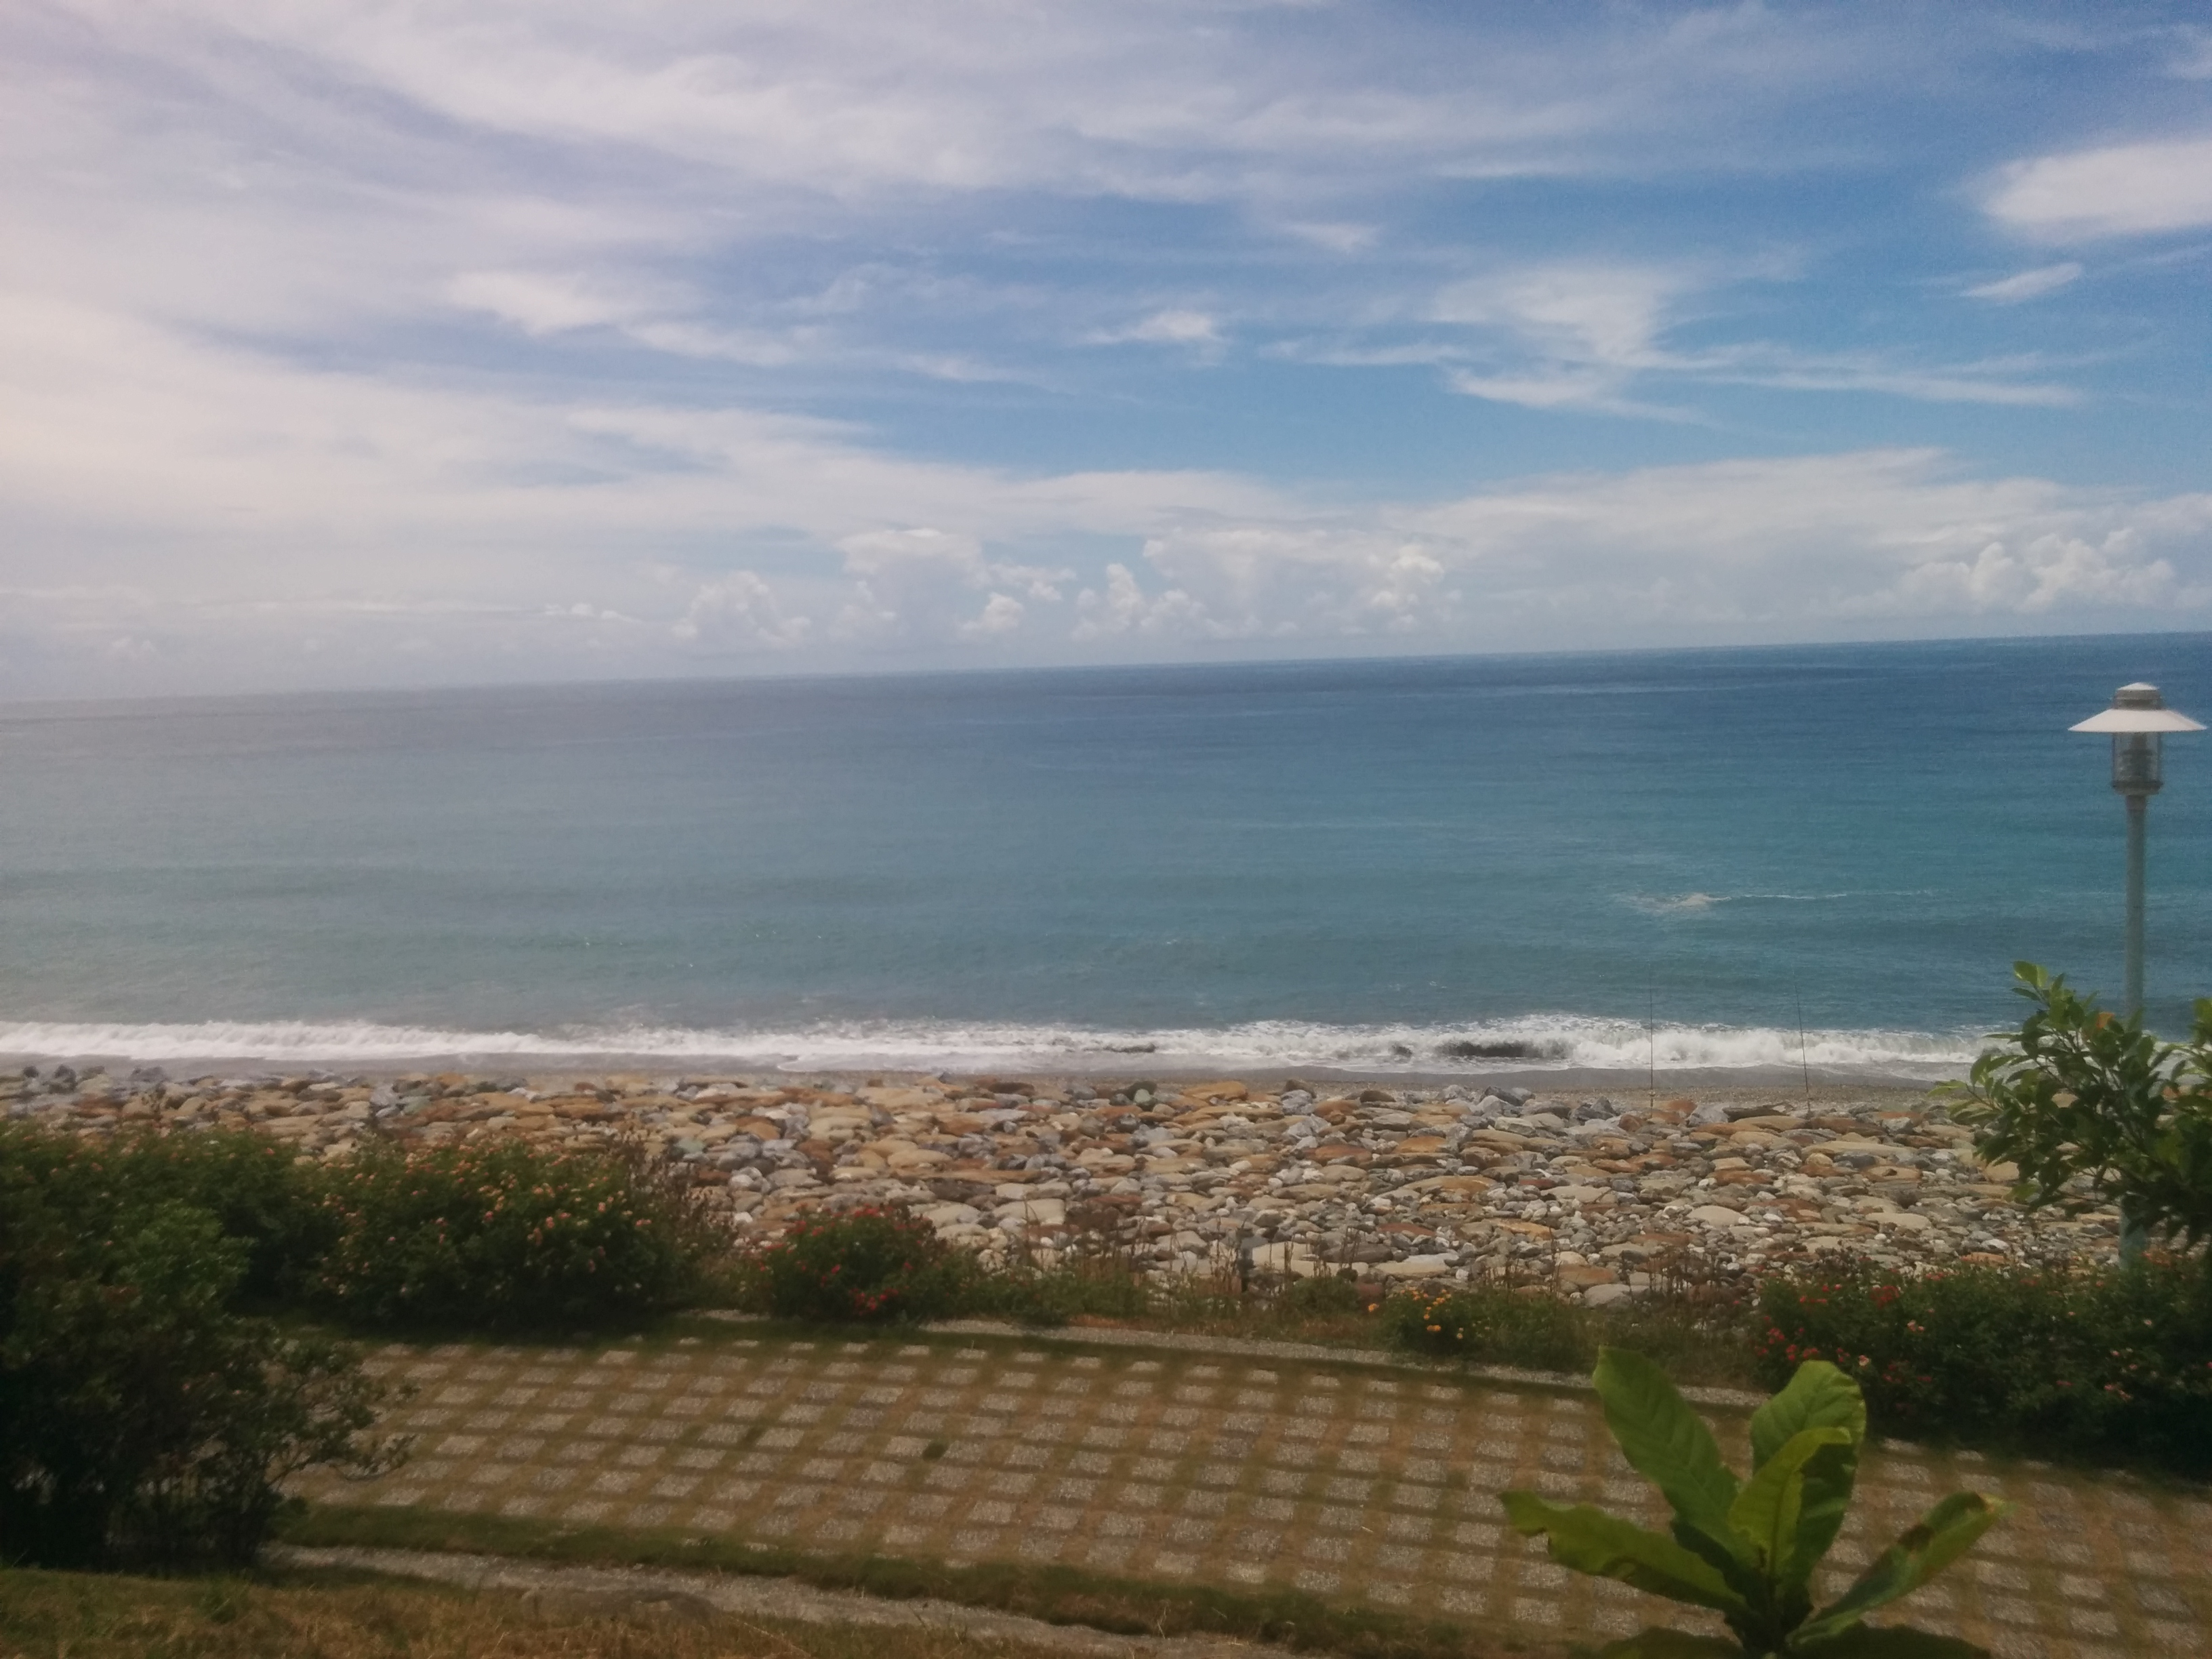 The Hualien beach